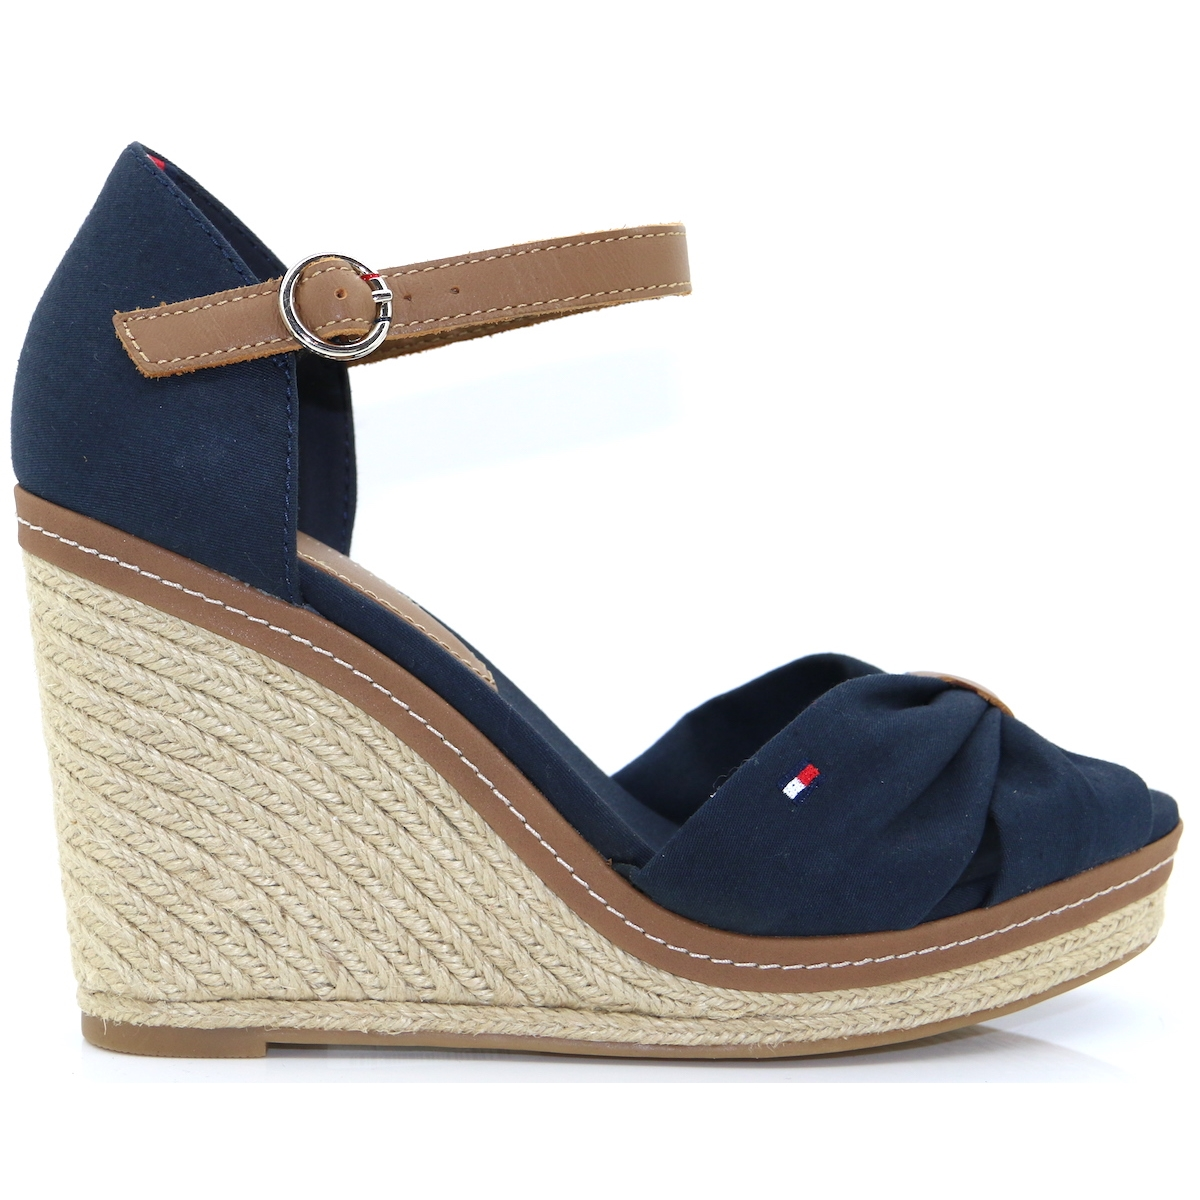 bf01eb54f Enter Email Address. Iconic Elena Sandal - Tommy Hilfiger MIDNIGHT WEDGES.  Tap to expand